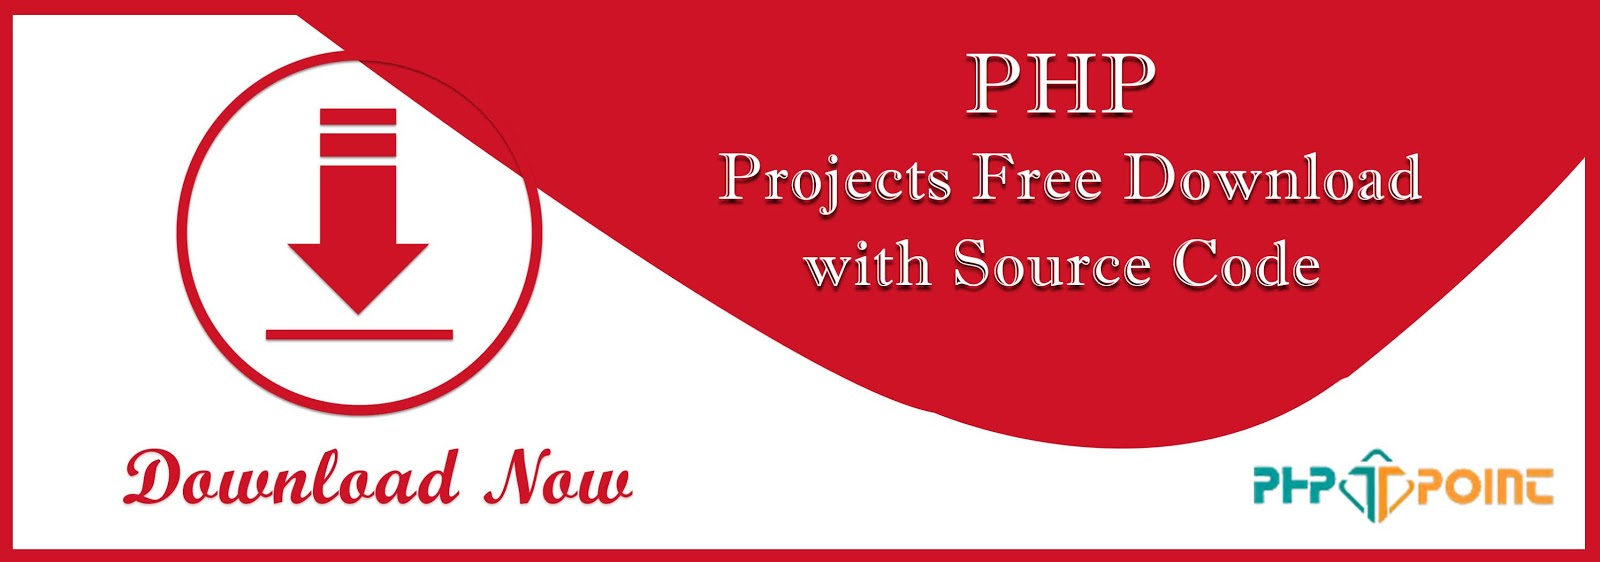 With code projects php source Download 10